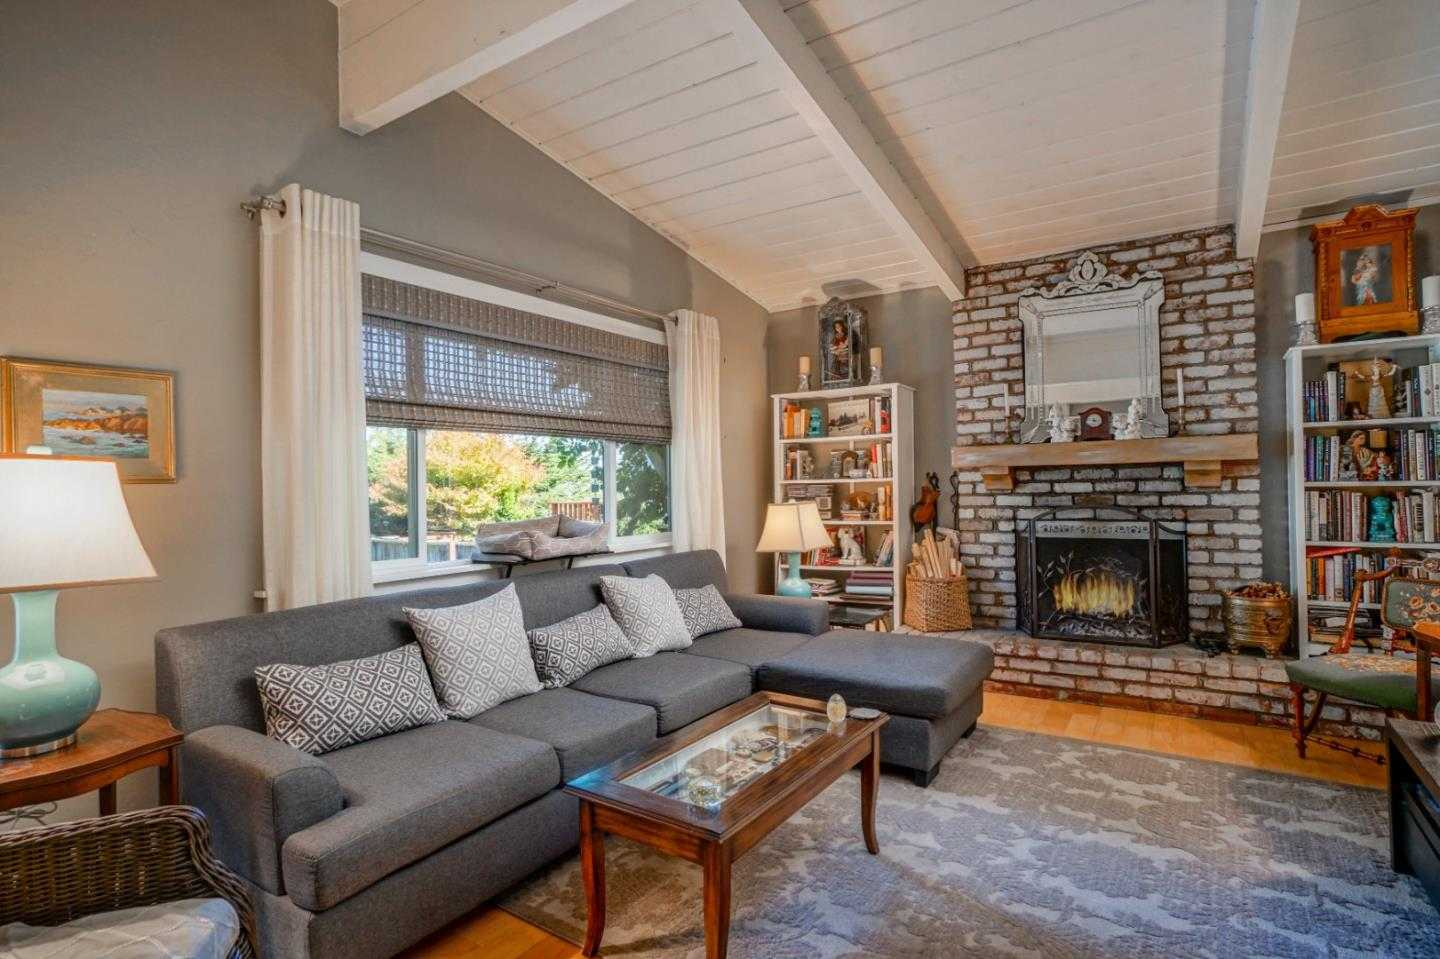 $825,000 - 2Br/2Ba -  for Sale in Pacific Grove